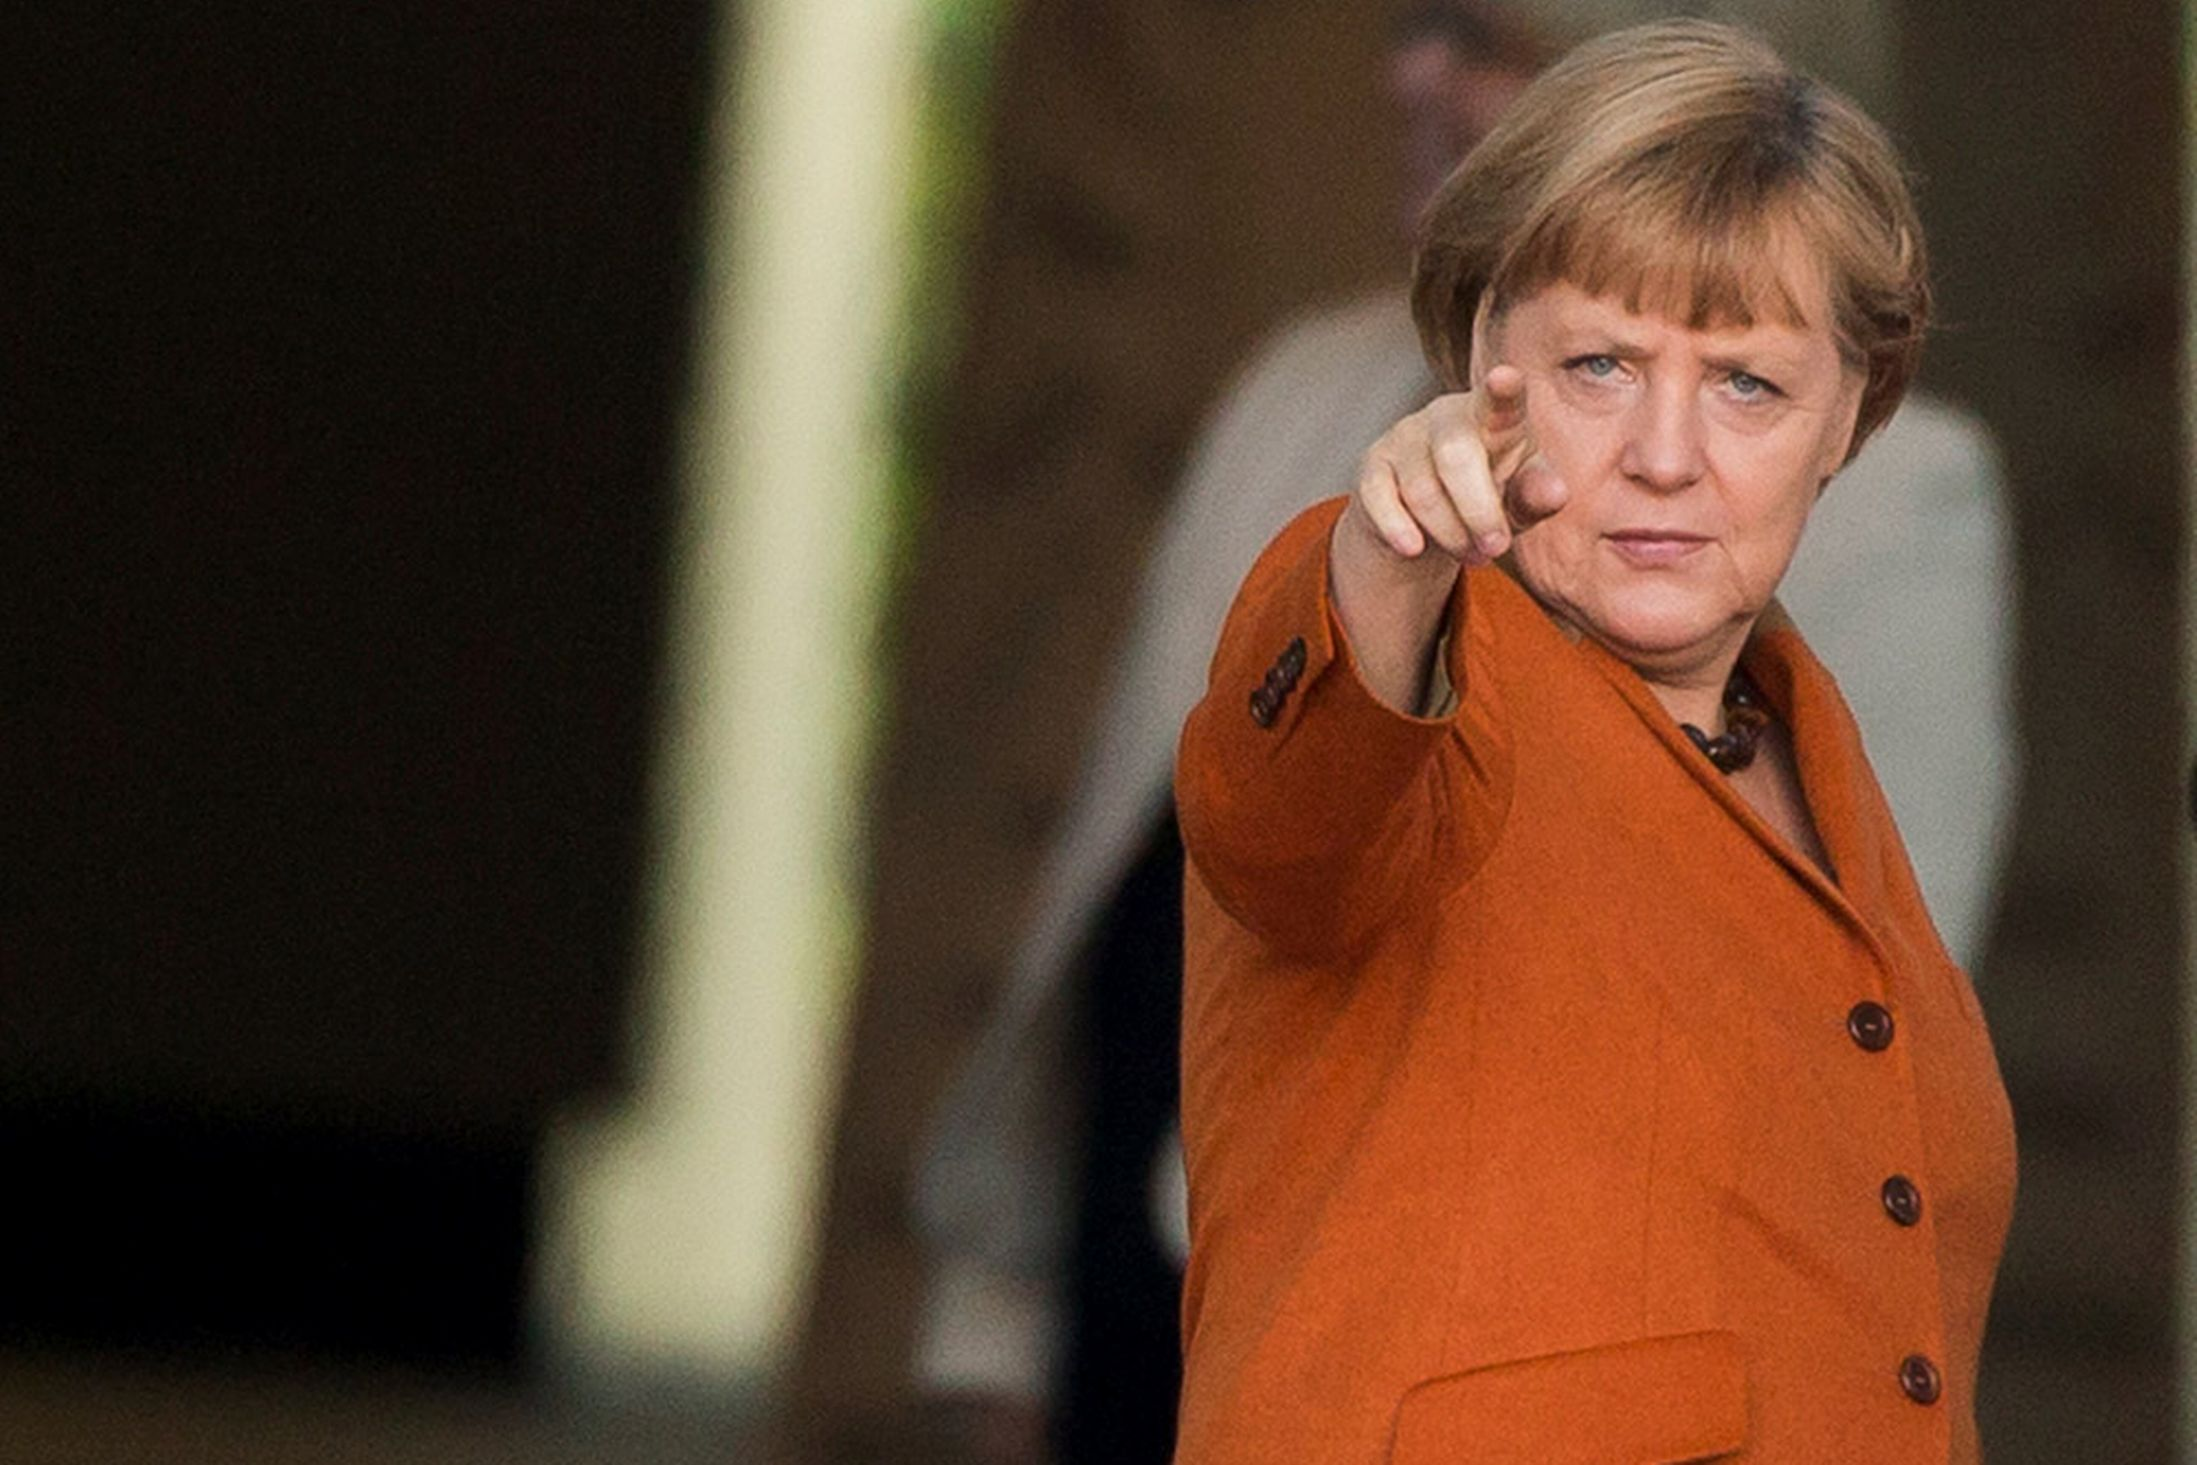 german-chancellor-angela-merkel-1375377.jpg